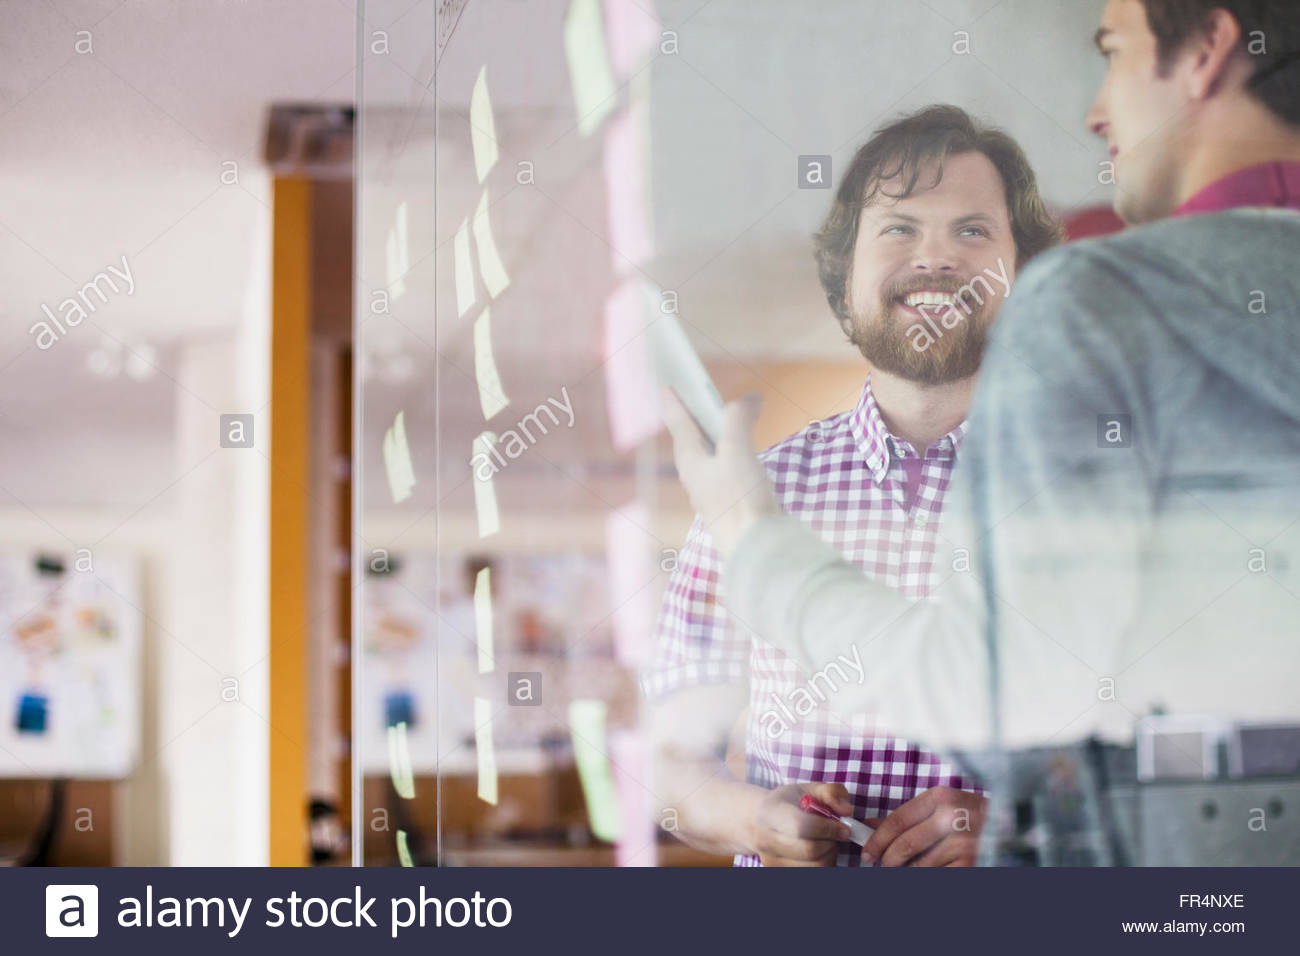 coworkers reviewing their flowchart strategy - Stock Image